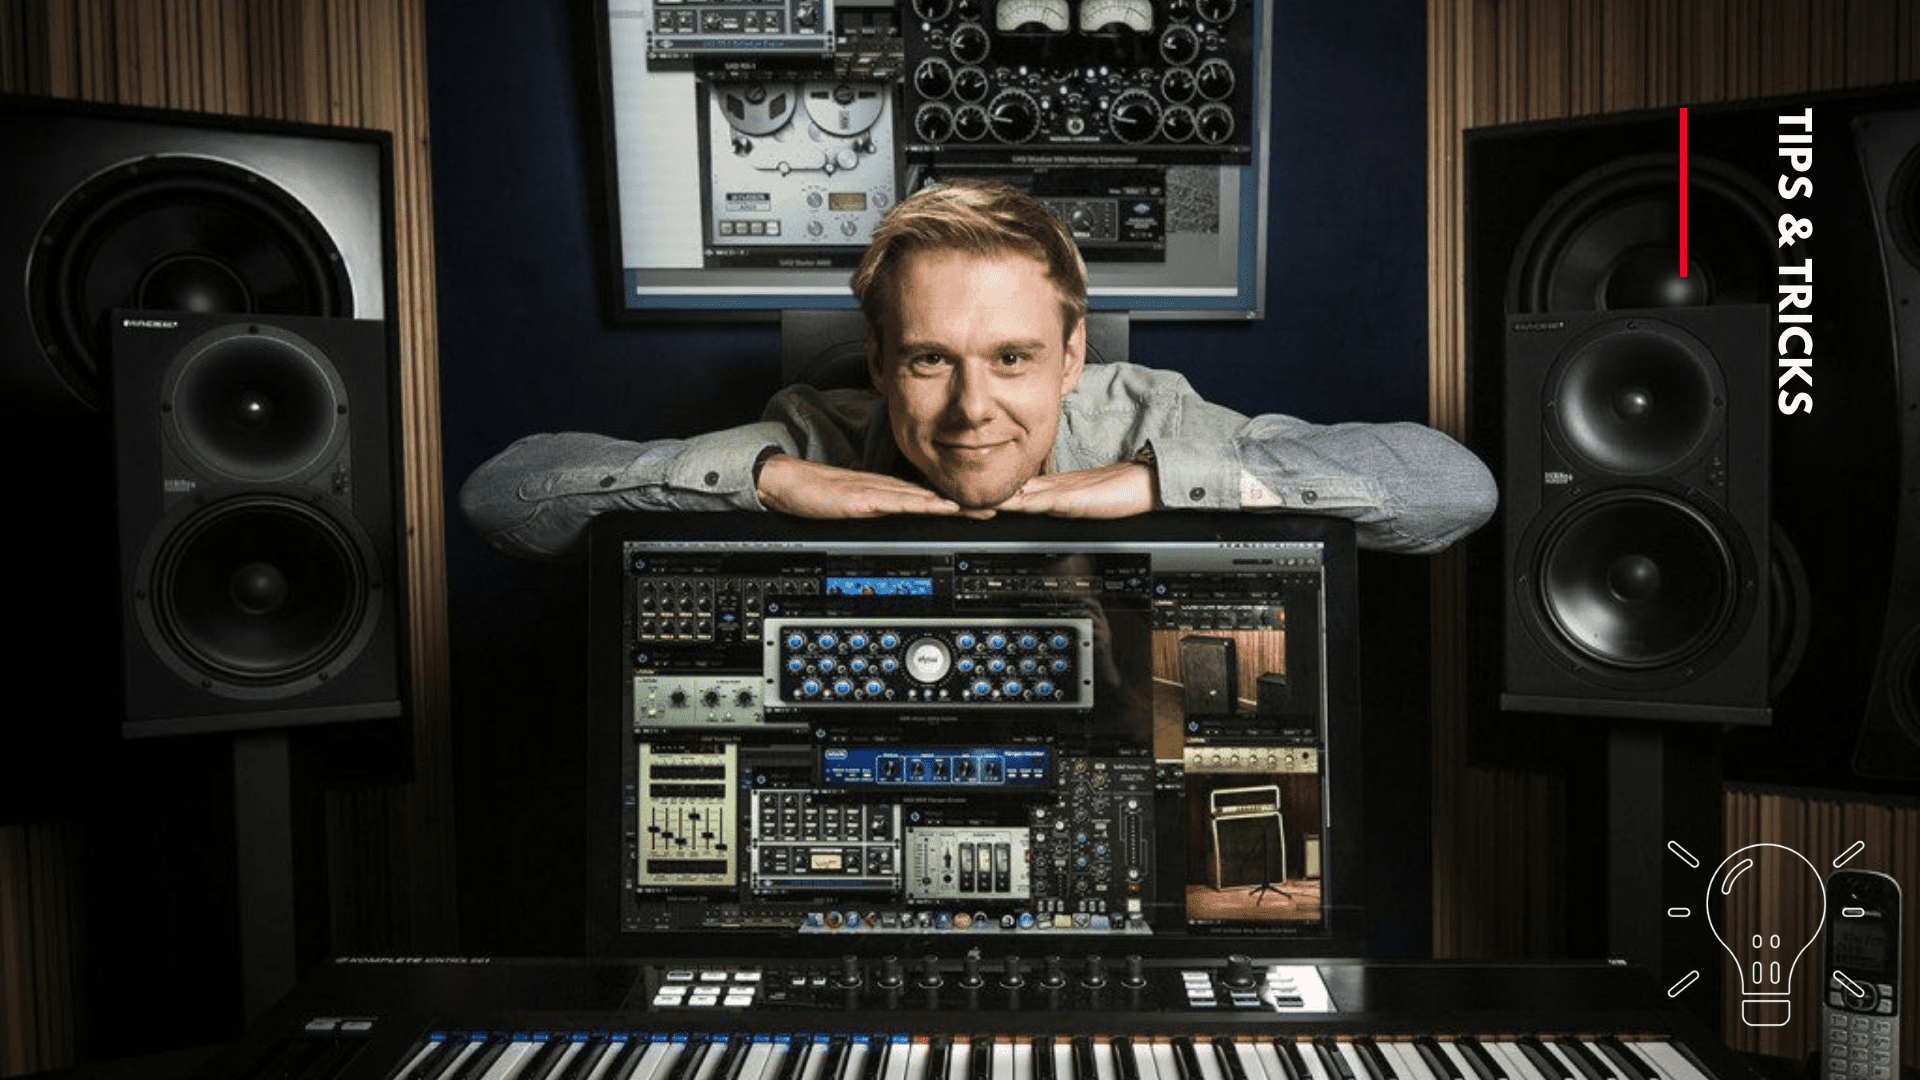 Armin Van Buuren teaches how he organizes his music projects